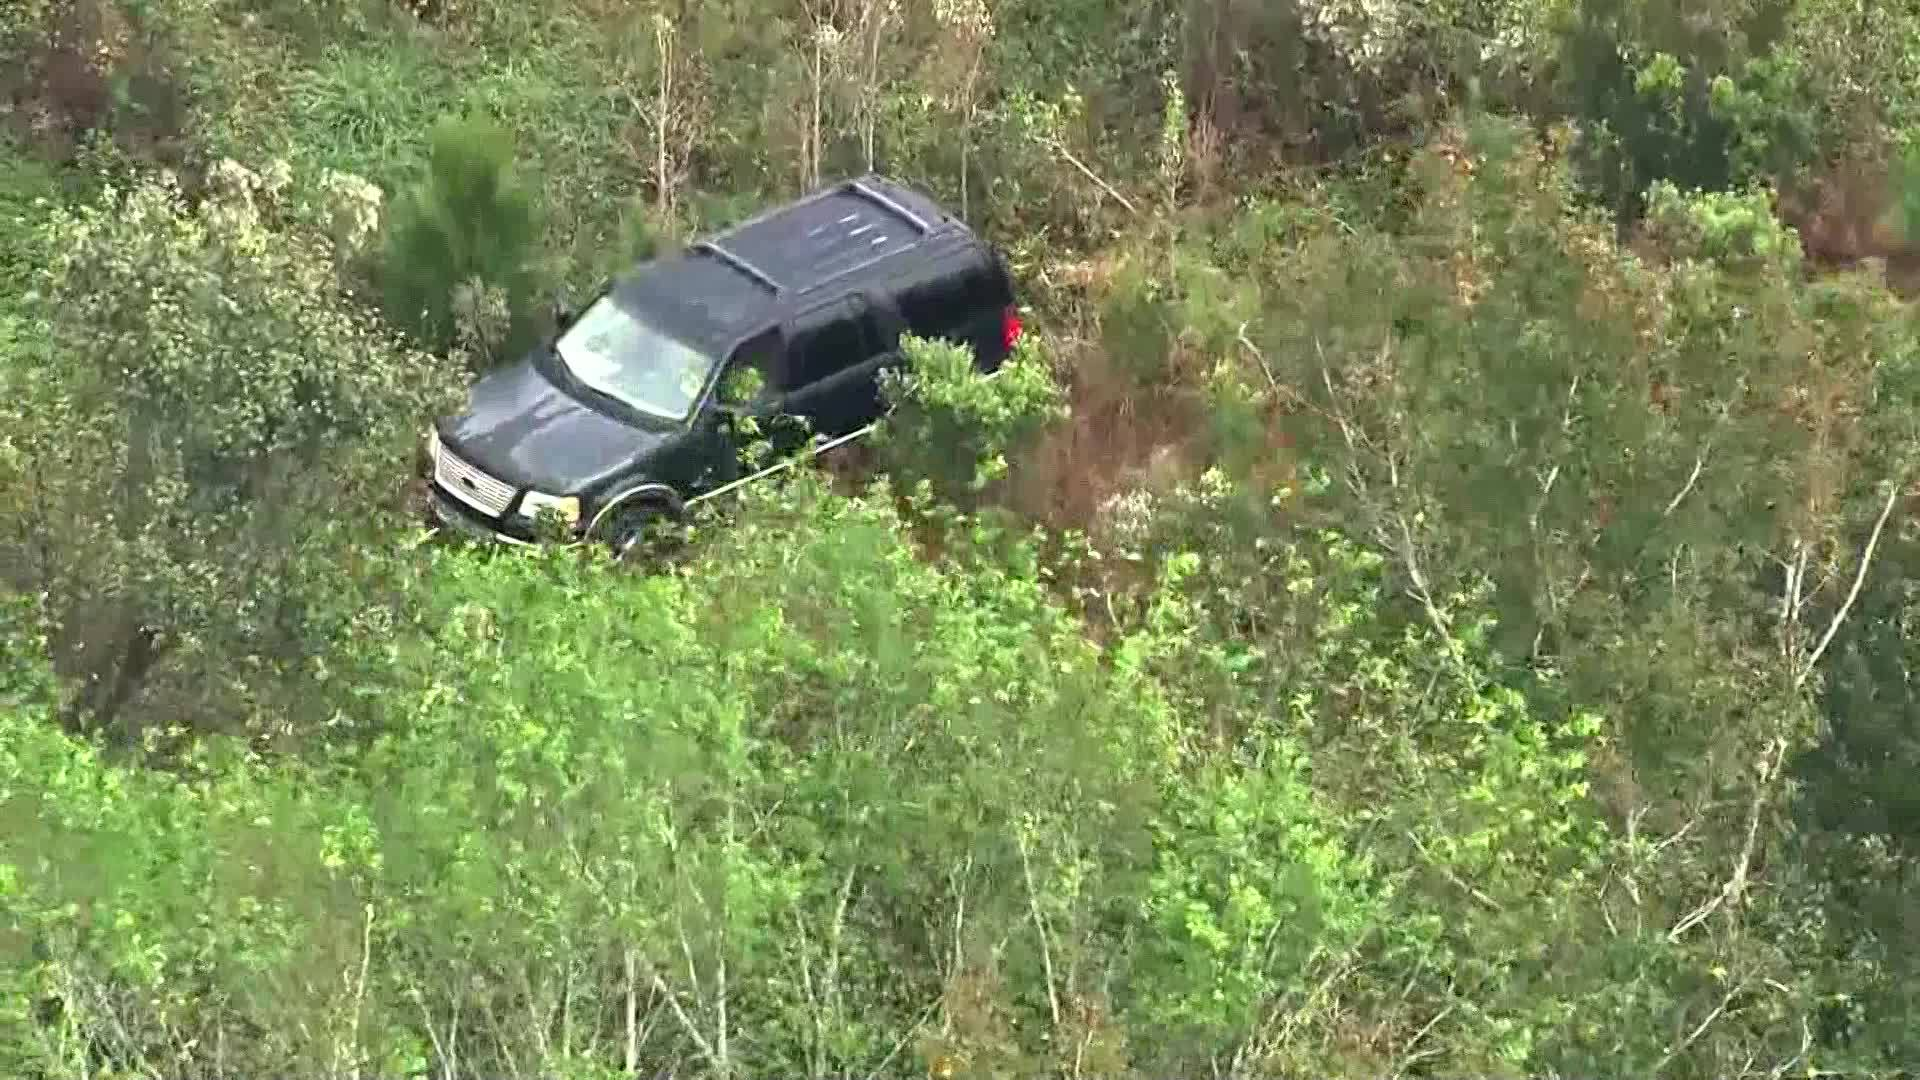 VIDEO: Stolen vehicle connected to NC abduction found